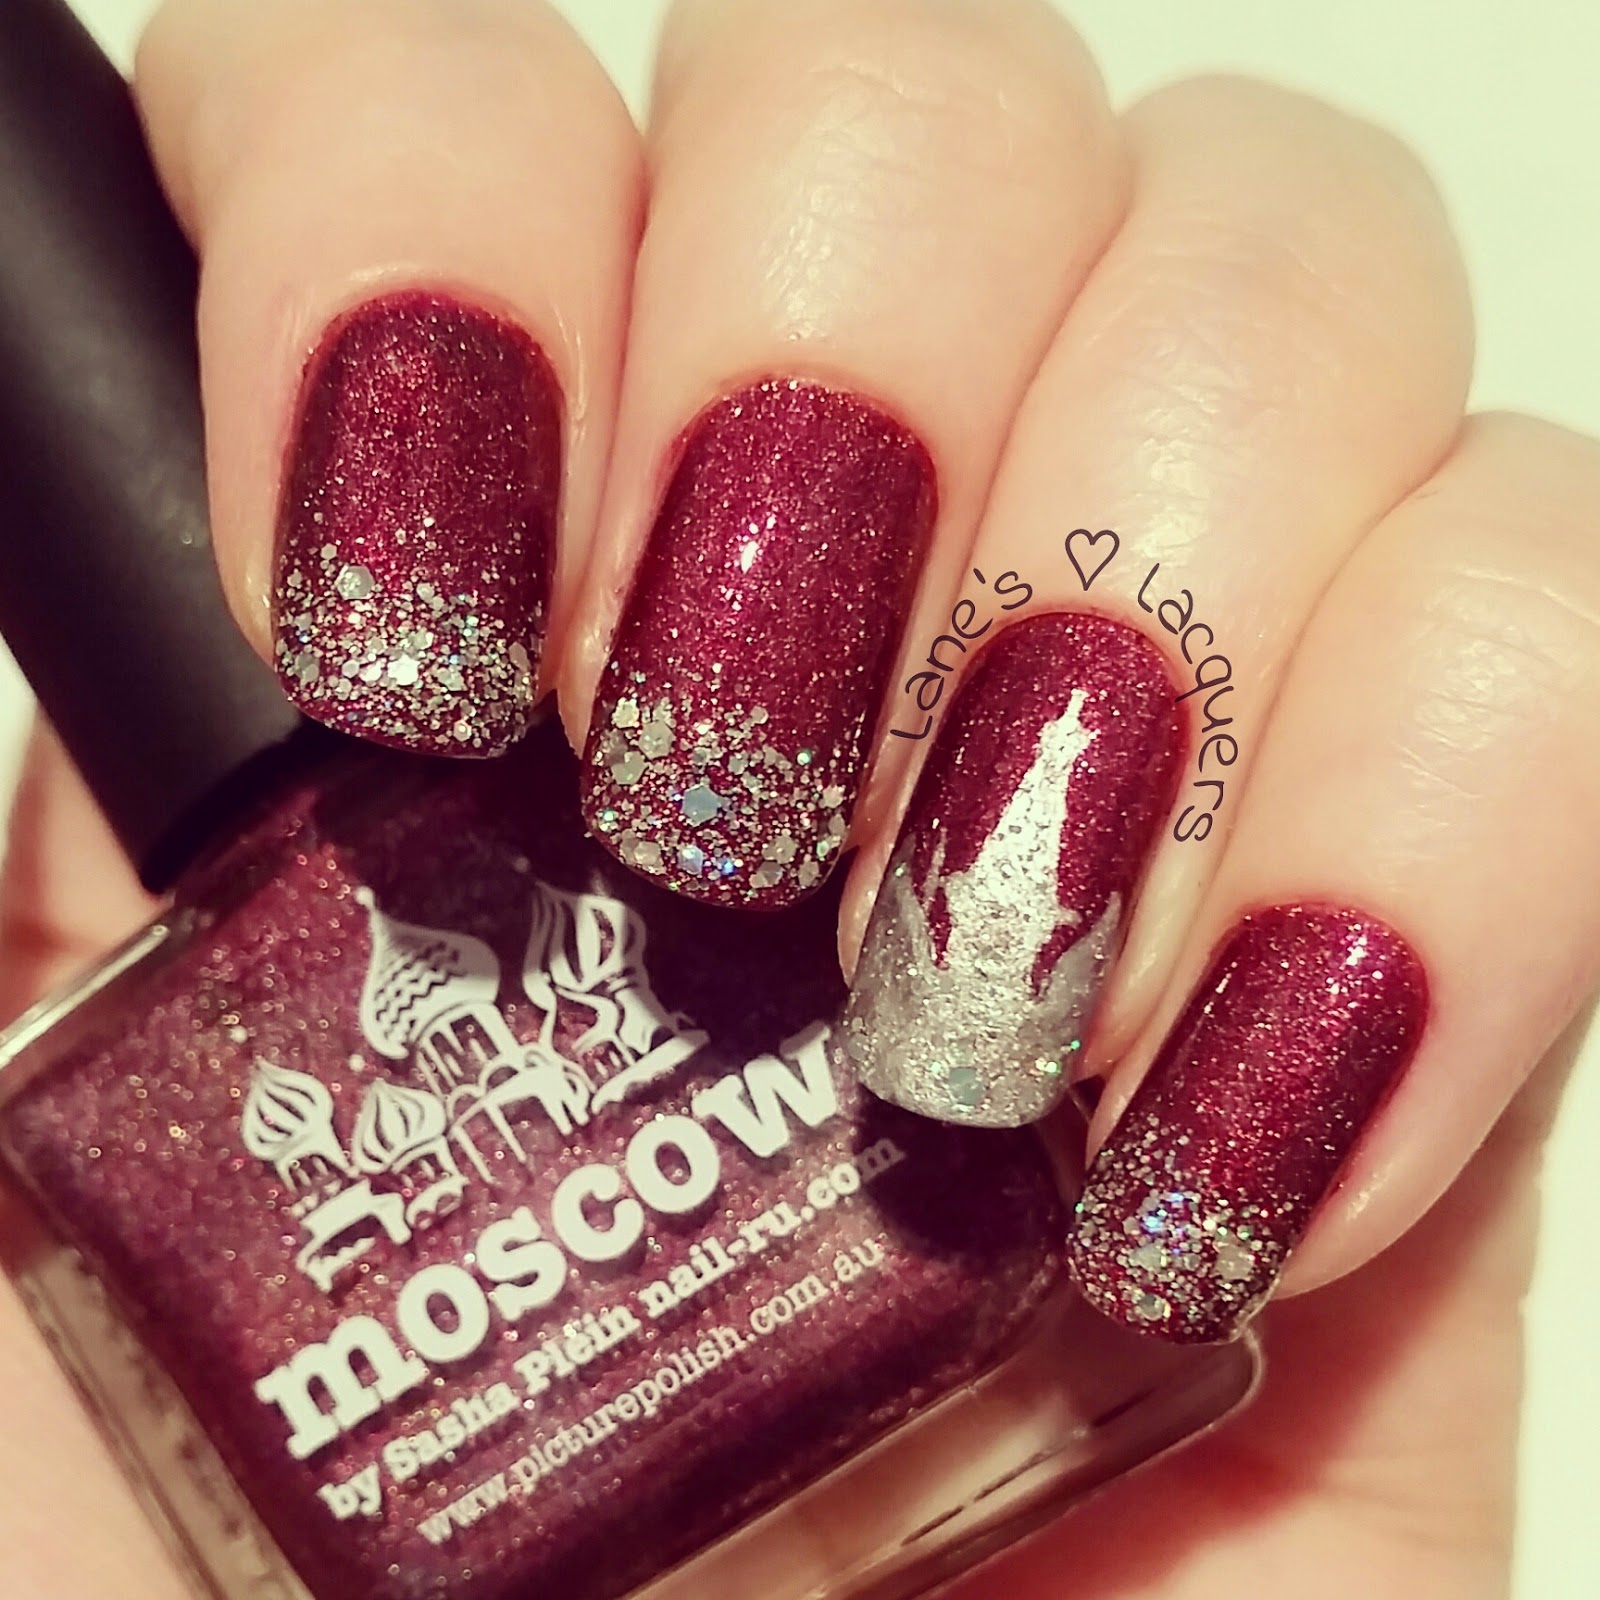 picture-polish-moscow-swatch-skyline-snow-glitter-nail-art (2)